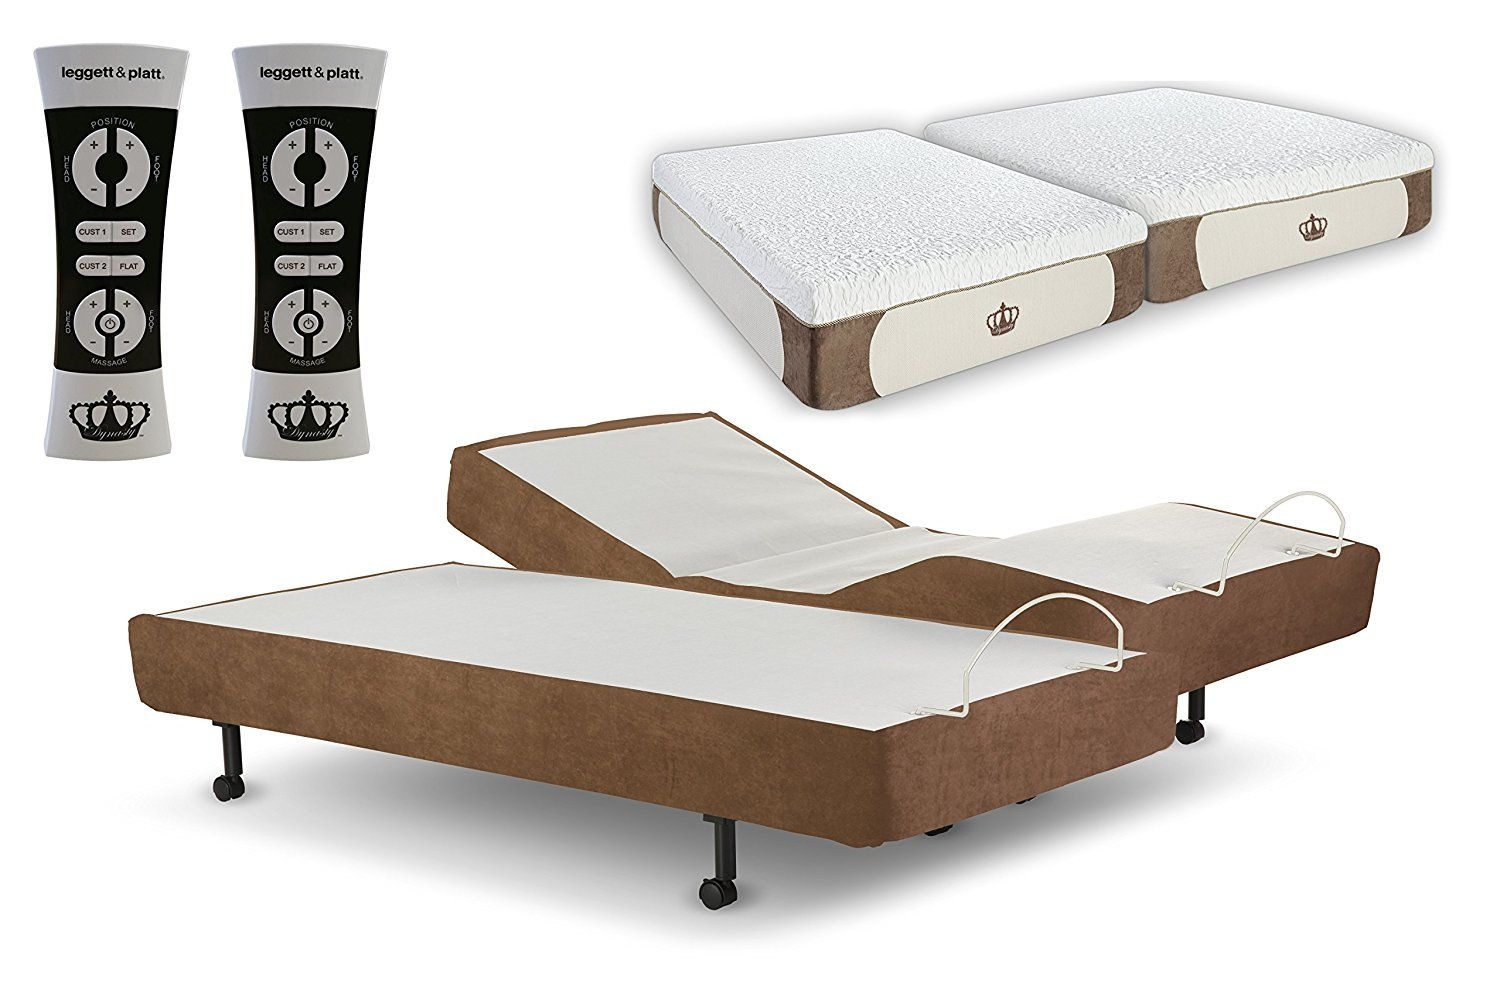 A Legget & Platt Company by birth, this product is ideal for people ...